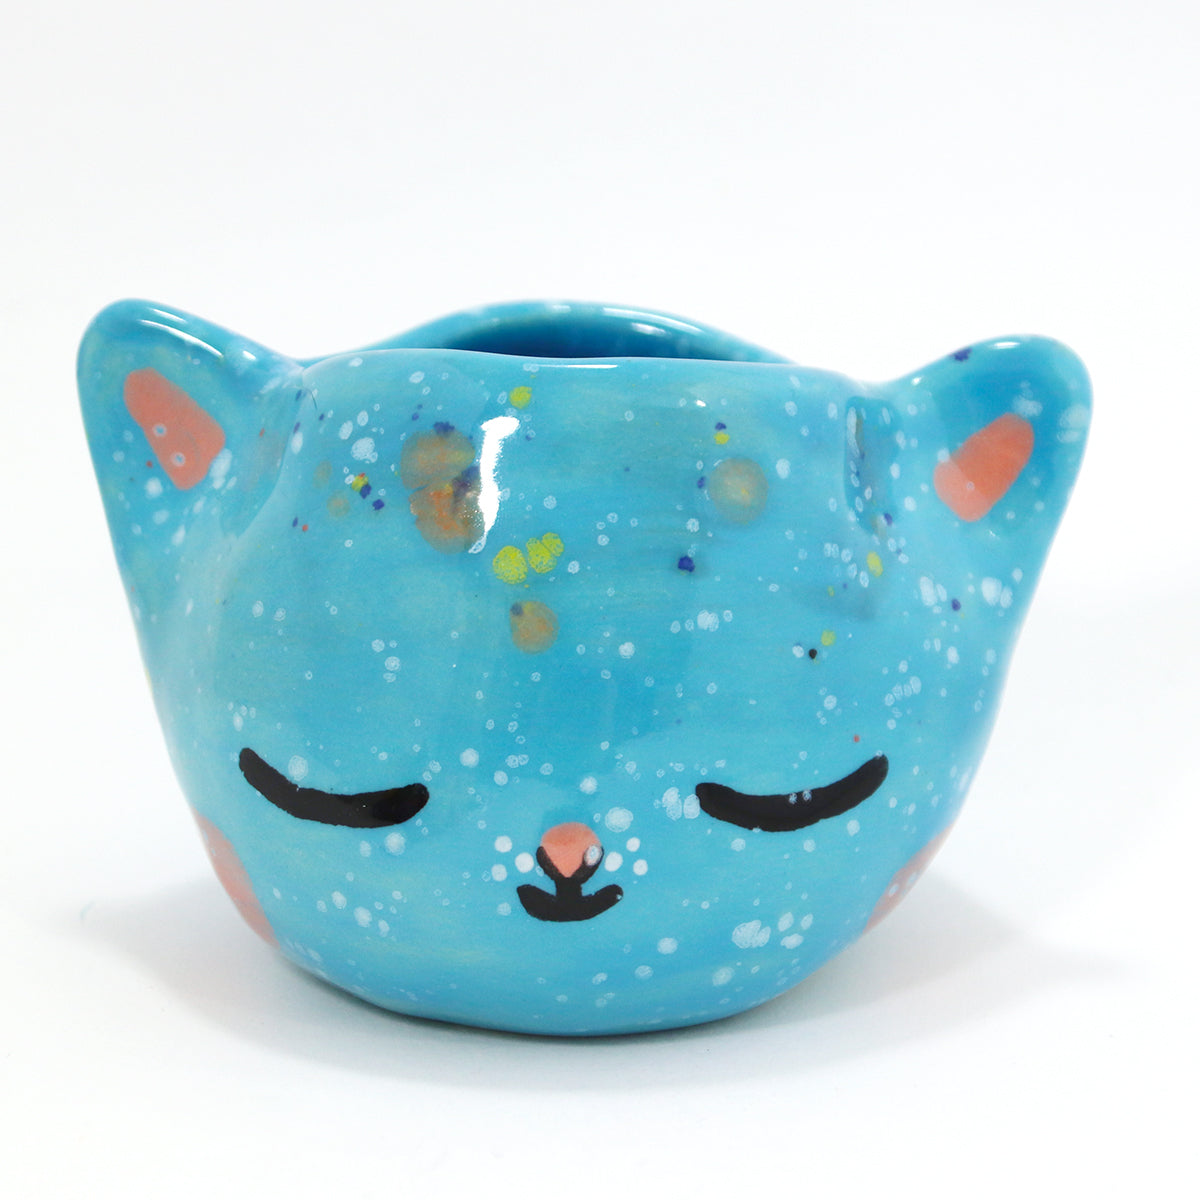 Ceramic Kitty Planter #1430 - M